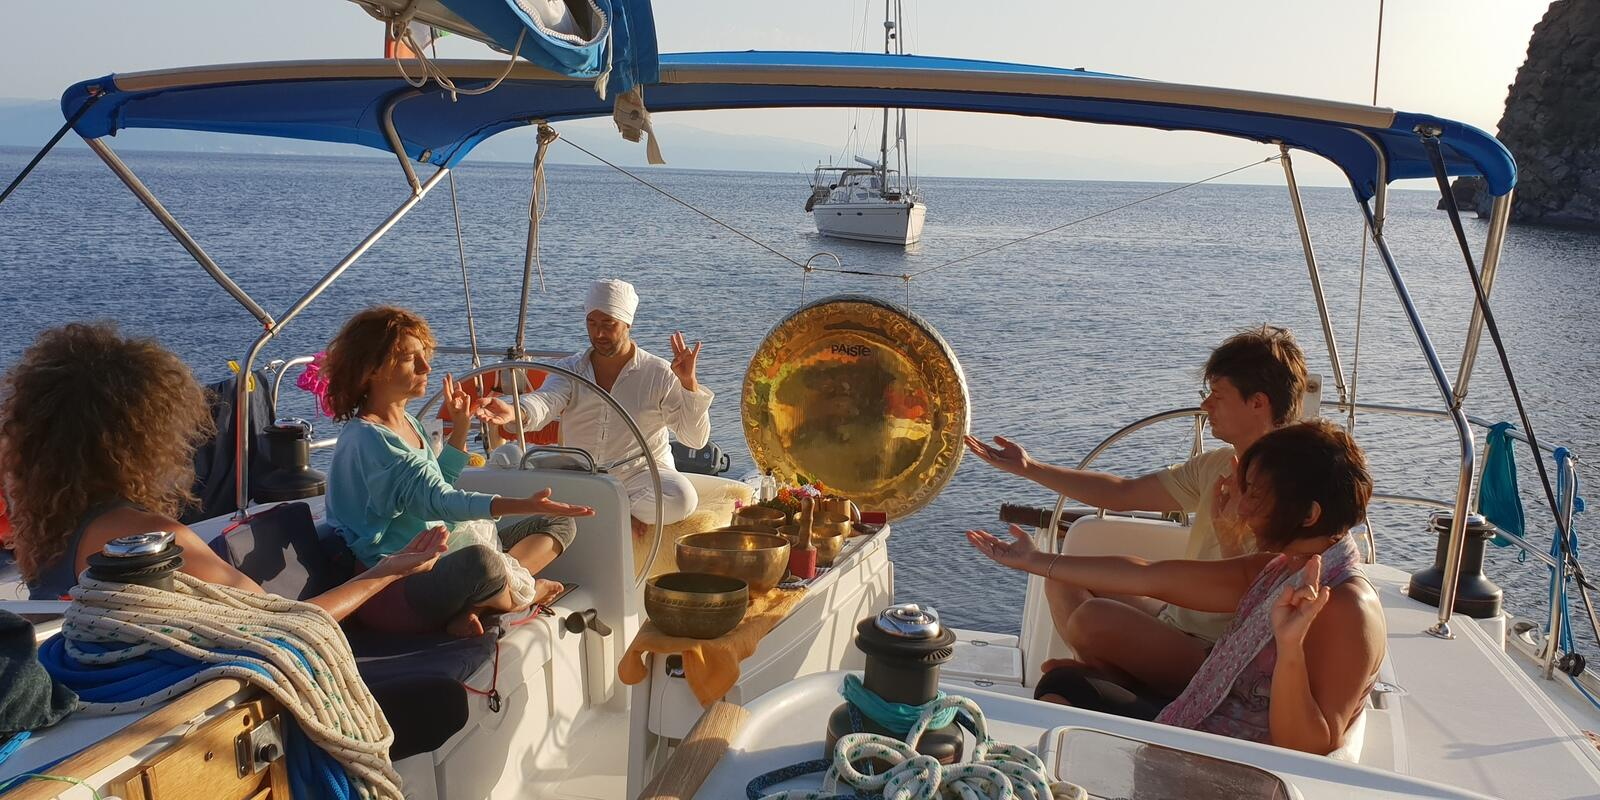 Holistic Sail Magic Aeolian - Sailing, Yoga and Gong for a Week of Relaxation and Energy